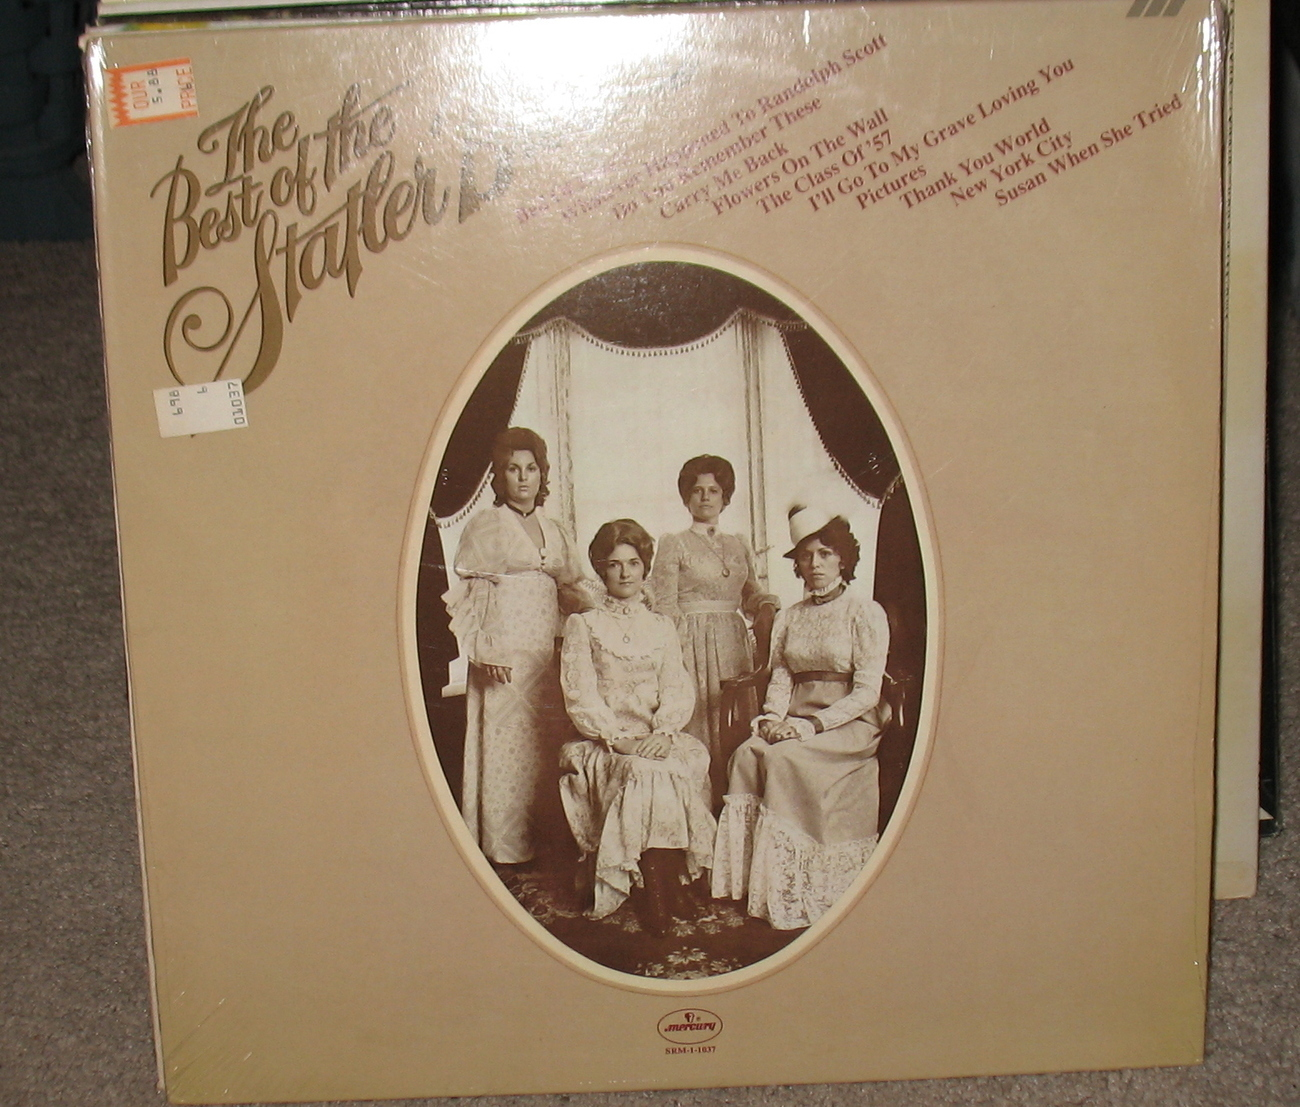 The Best of the Statler Bros LP 0698